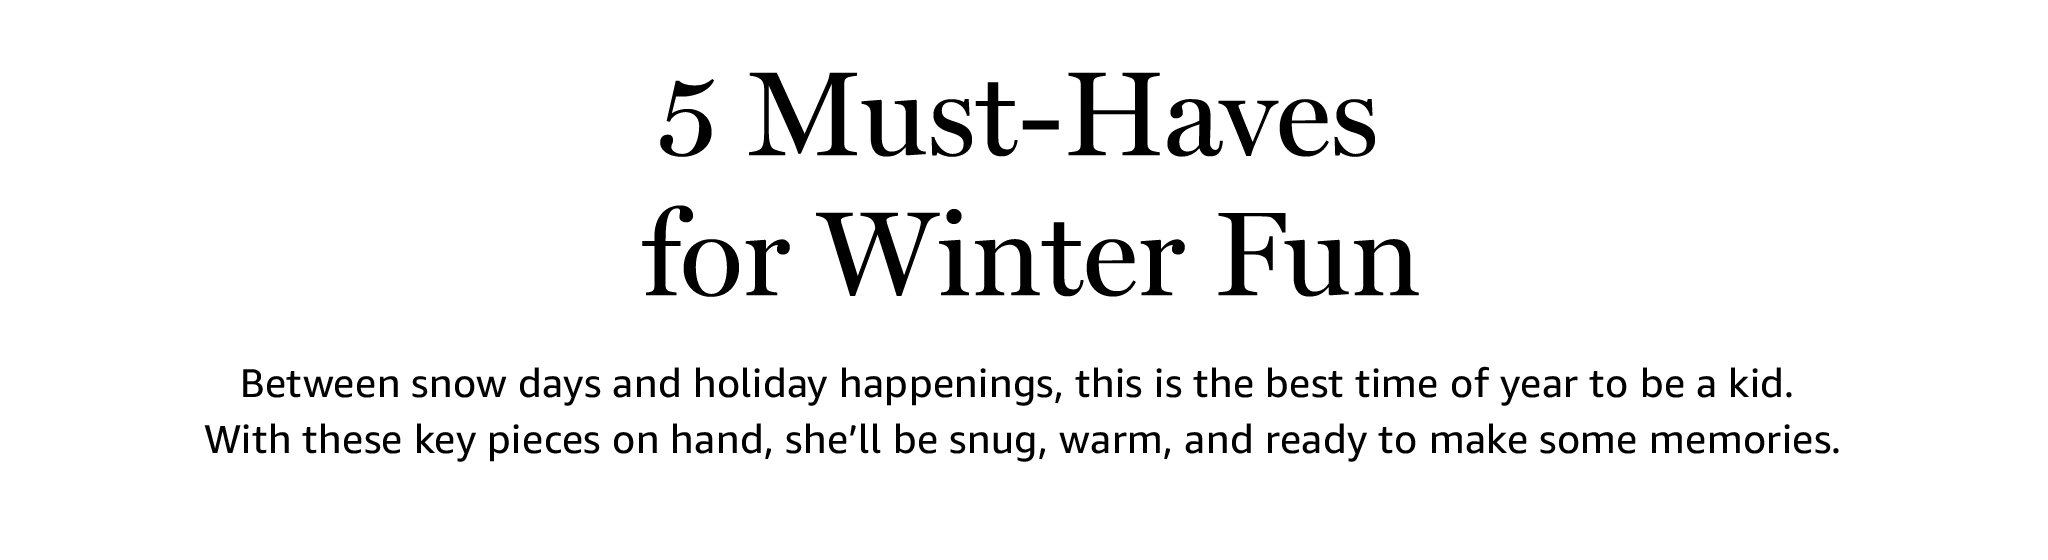 5 Must-Haves for Winter Fun